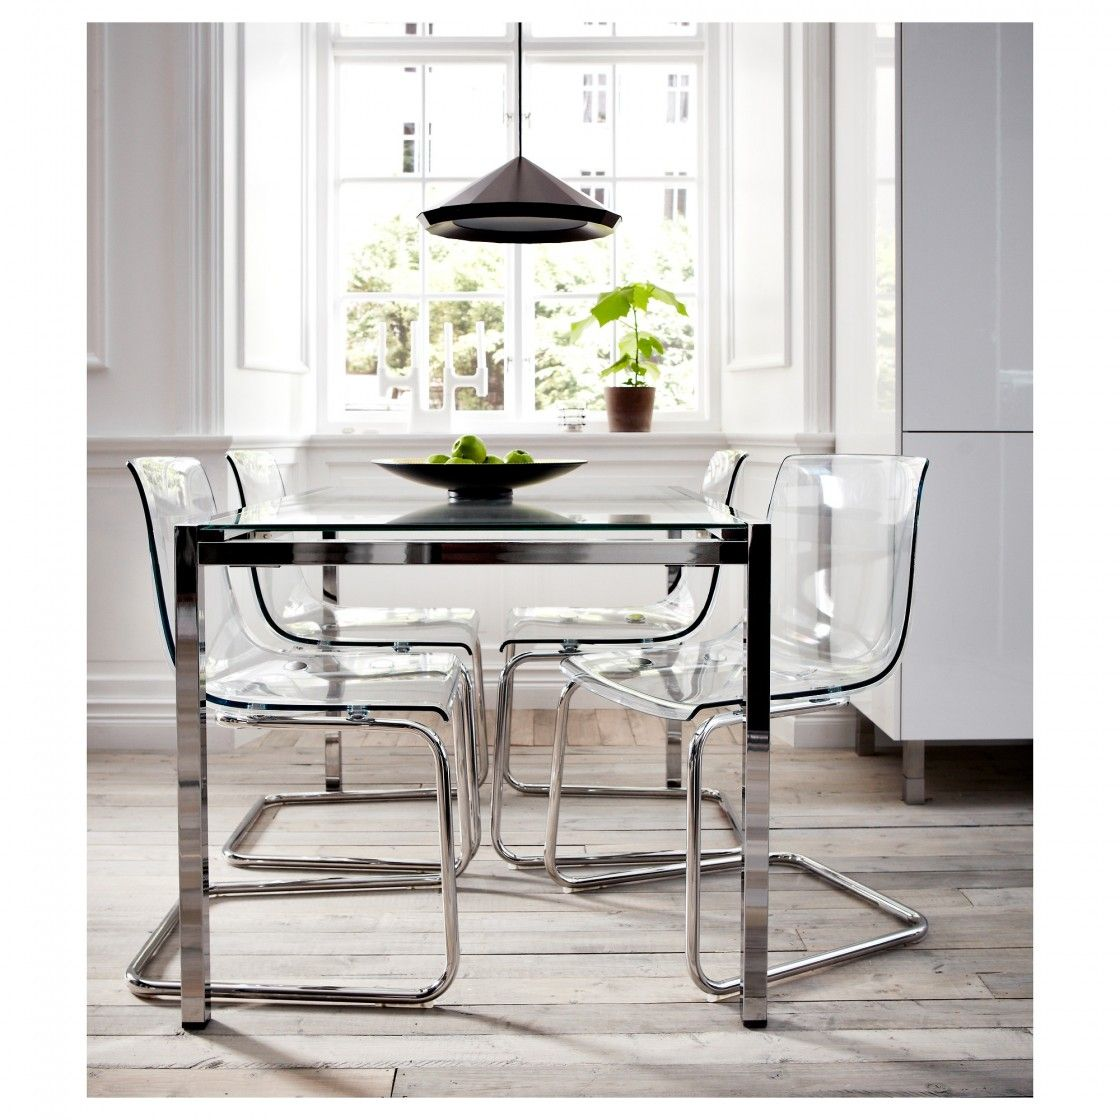 Ikea glass kitchen table - Beautiful Rectangle Glass Dining Table With Chrome Polished Metal Frame And Four Translucent Acrylic Dining Chairs